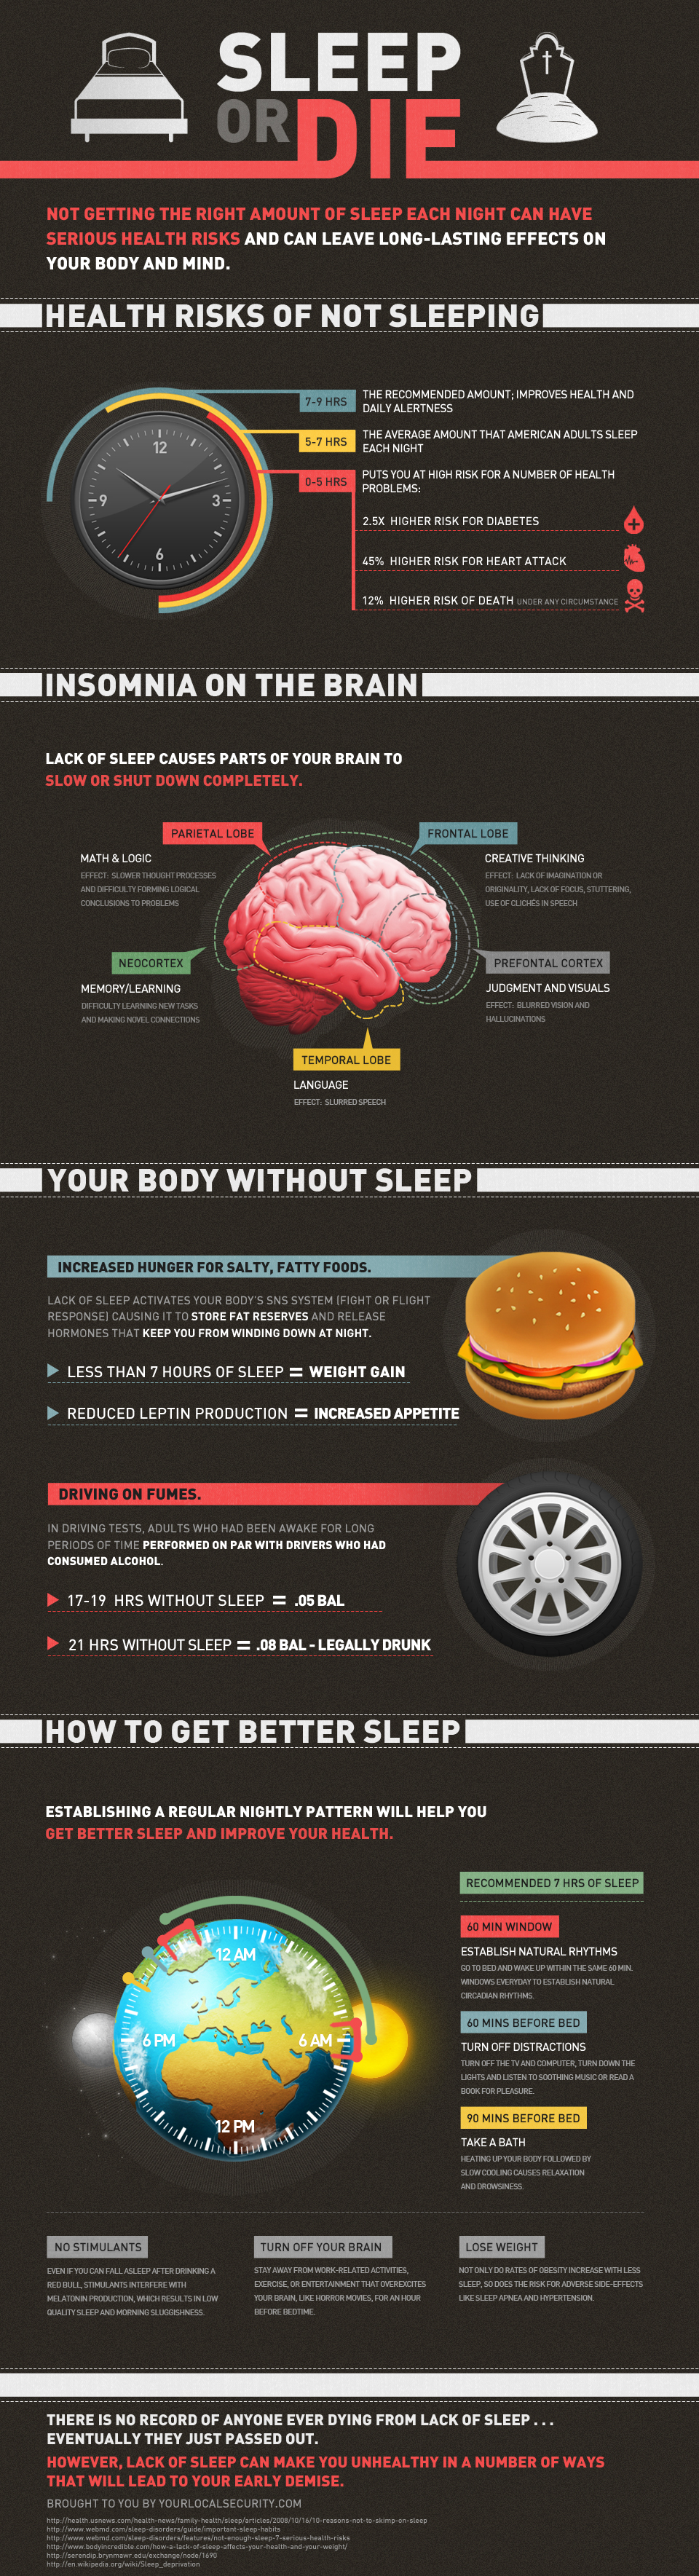 How Lack of Sleep Can Kill You - Infographic